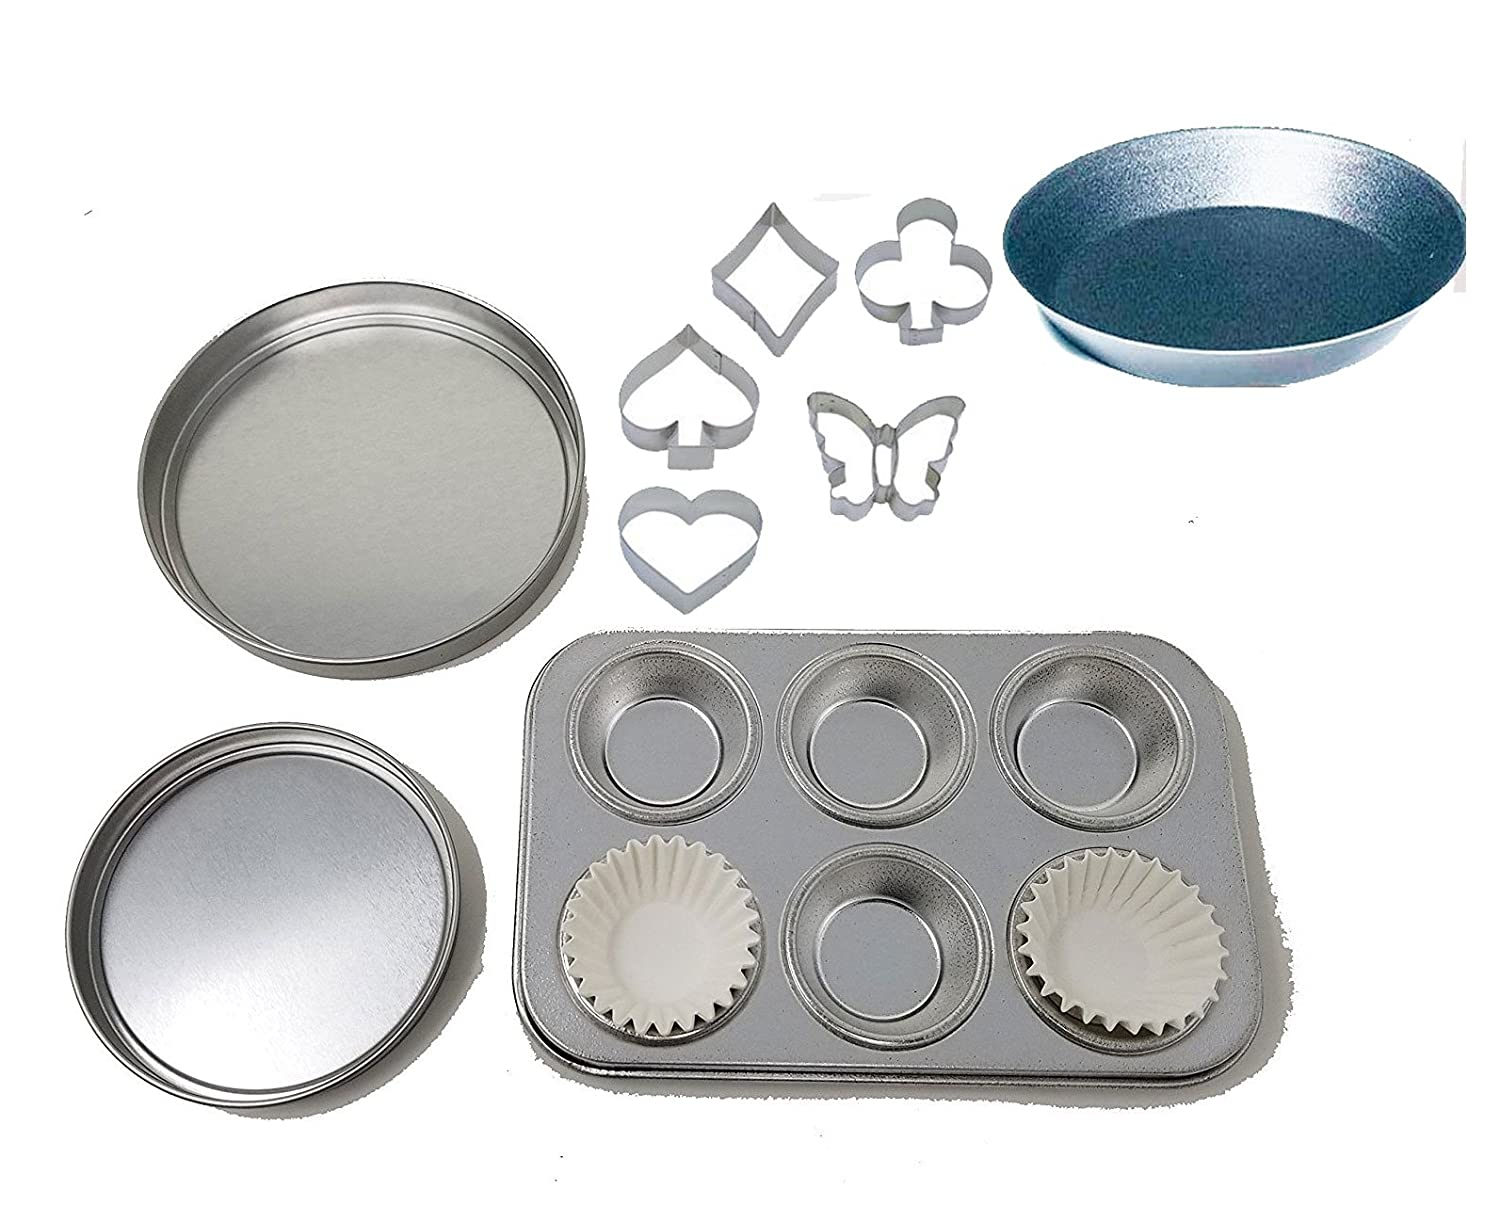 Easy Bake Oven Pan Set Replacement Pans Cupcake Muffin Pan, Pie Pan,and Mini Cookie Cutters